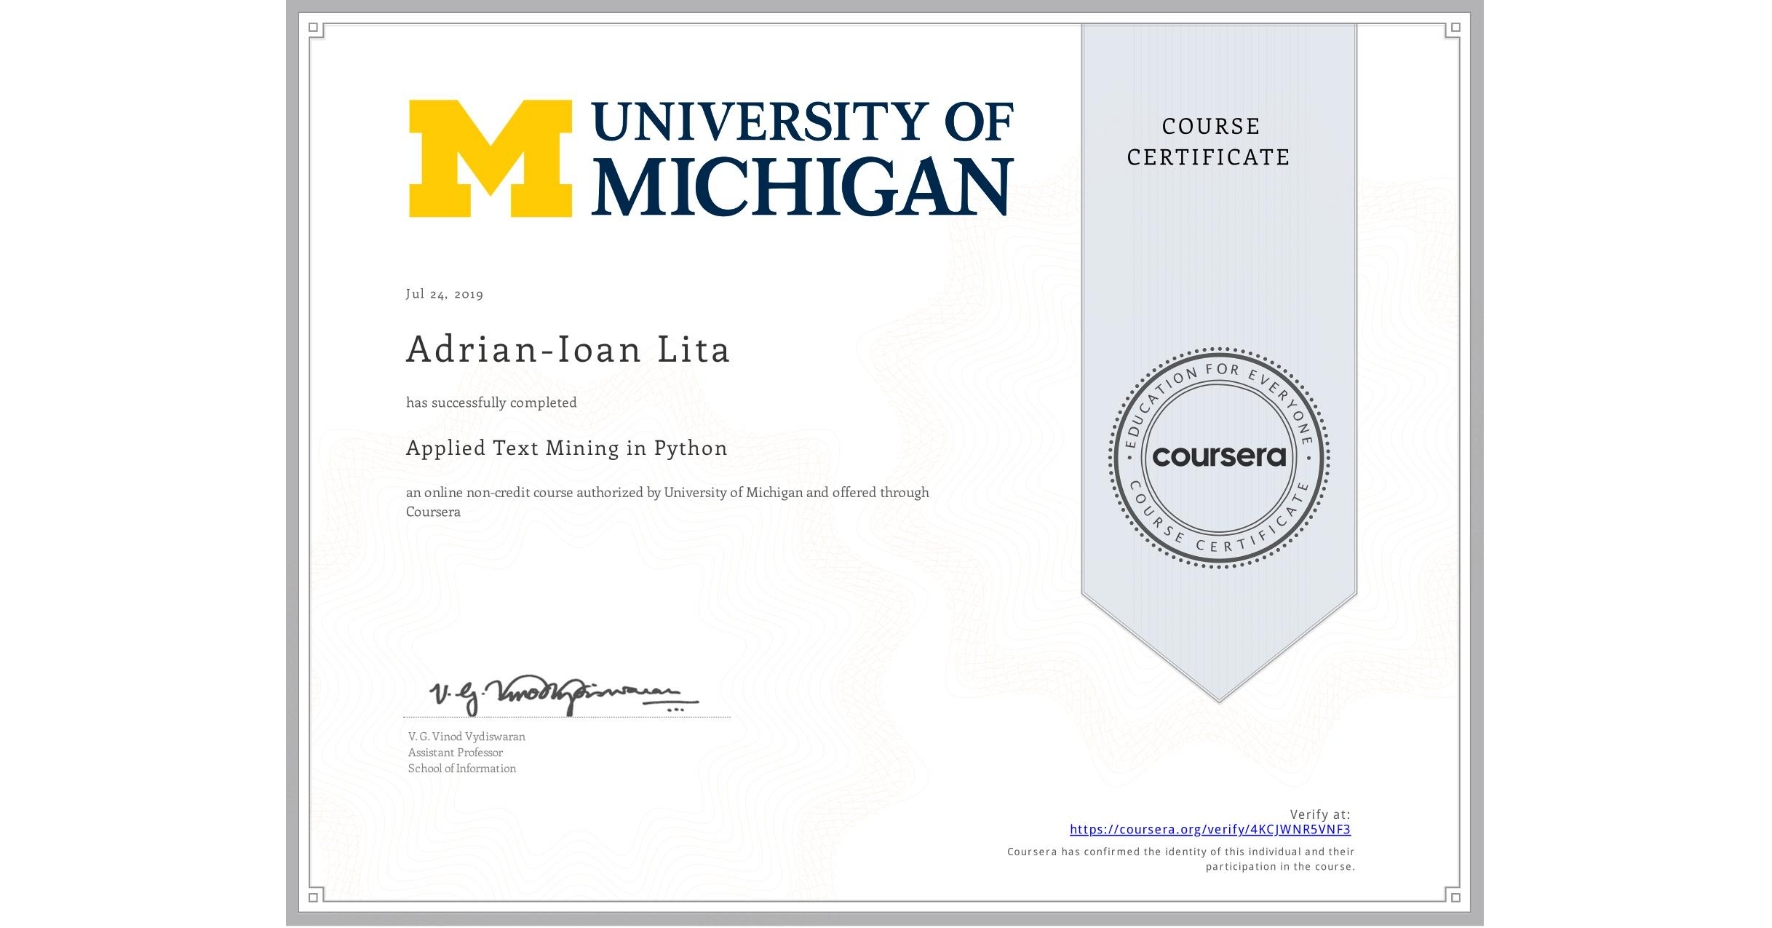 View certificate for Adrian-Ioan Lita, Applied Text Mining in Python, an online non-credit course authorized by University of Michigan and offered through Coursera